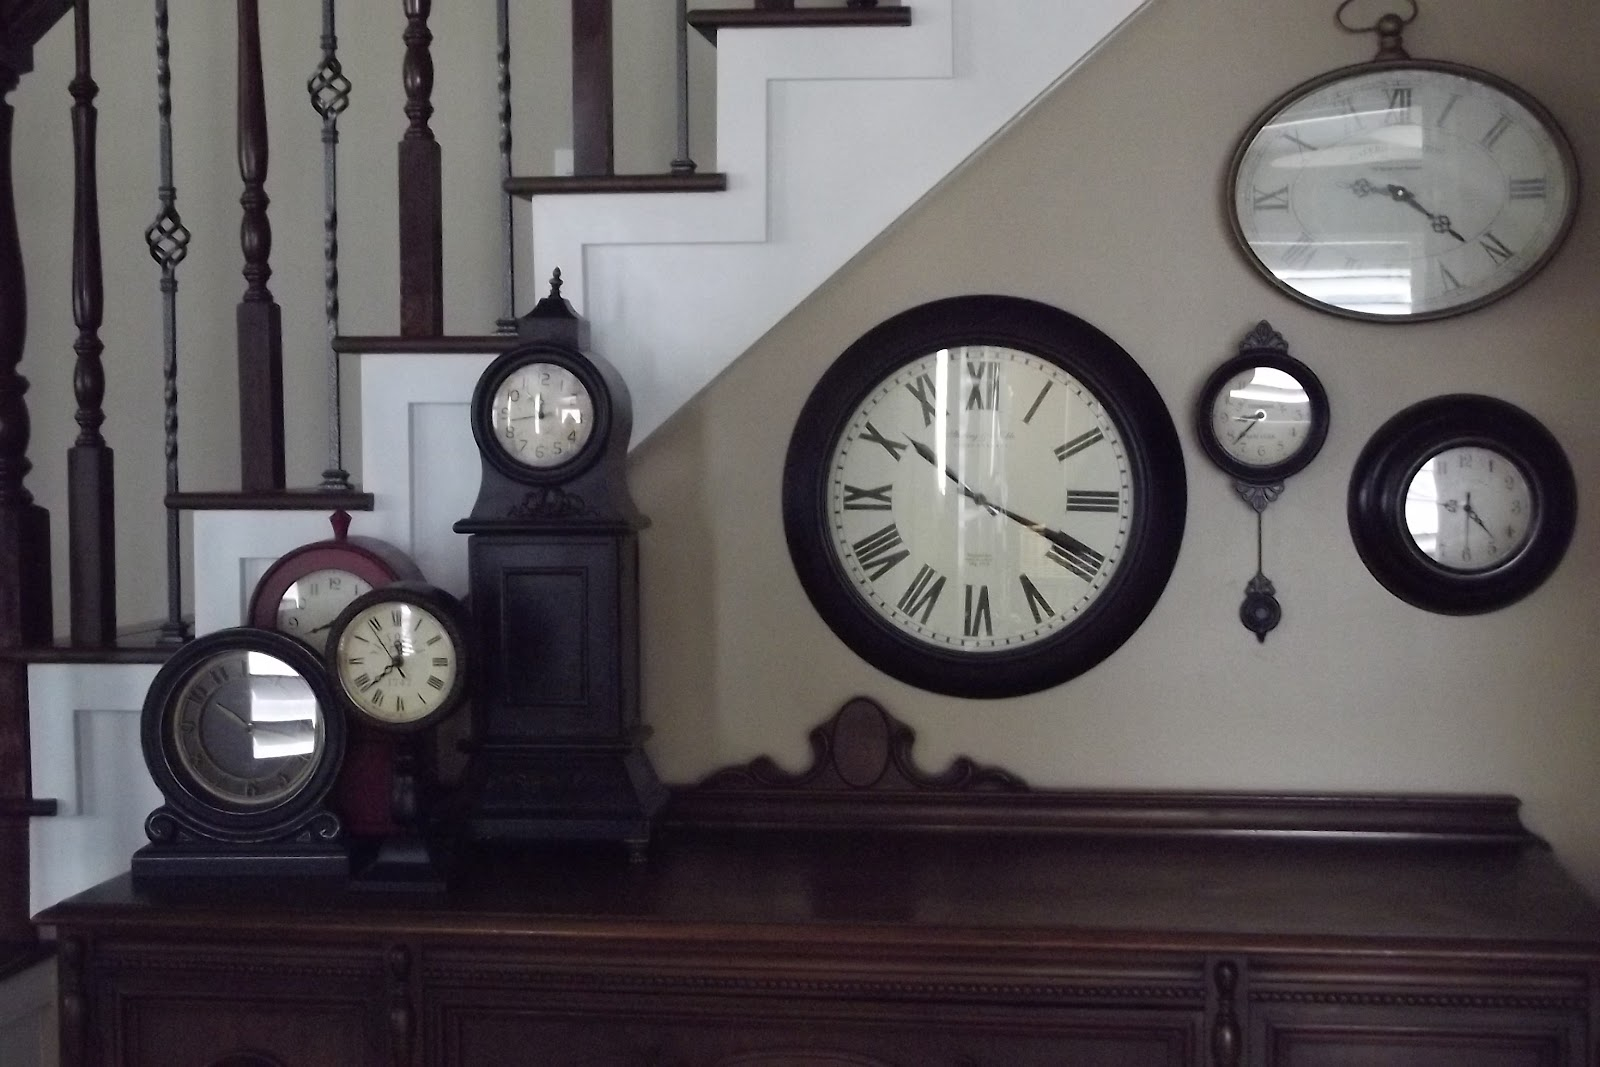 Clocks For Walls How To Enhance Your Decor With Wall Clocks The Trent